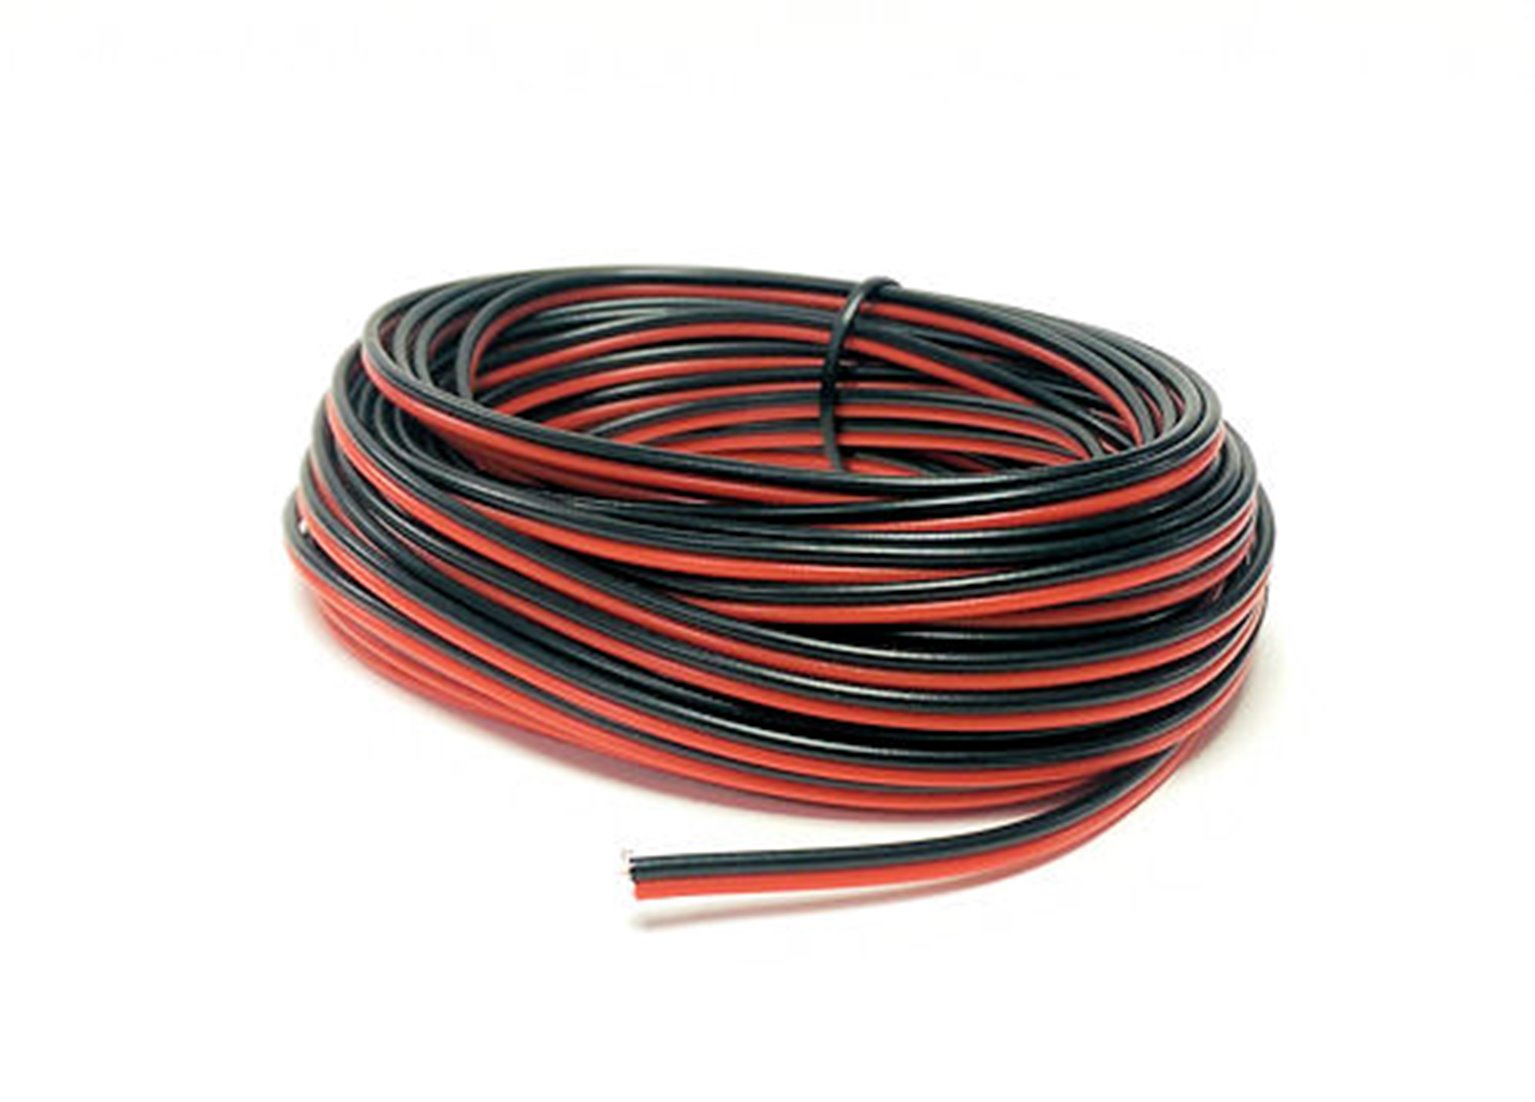 GM09RB Red/Black Twinned Wire (14 x 0.15mm) 10m